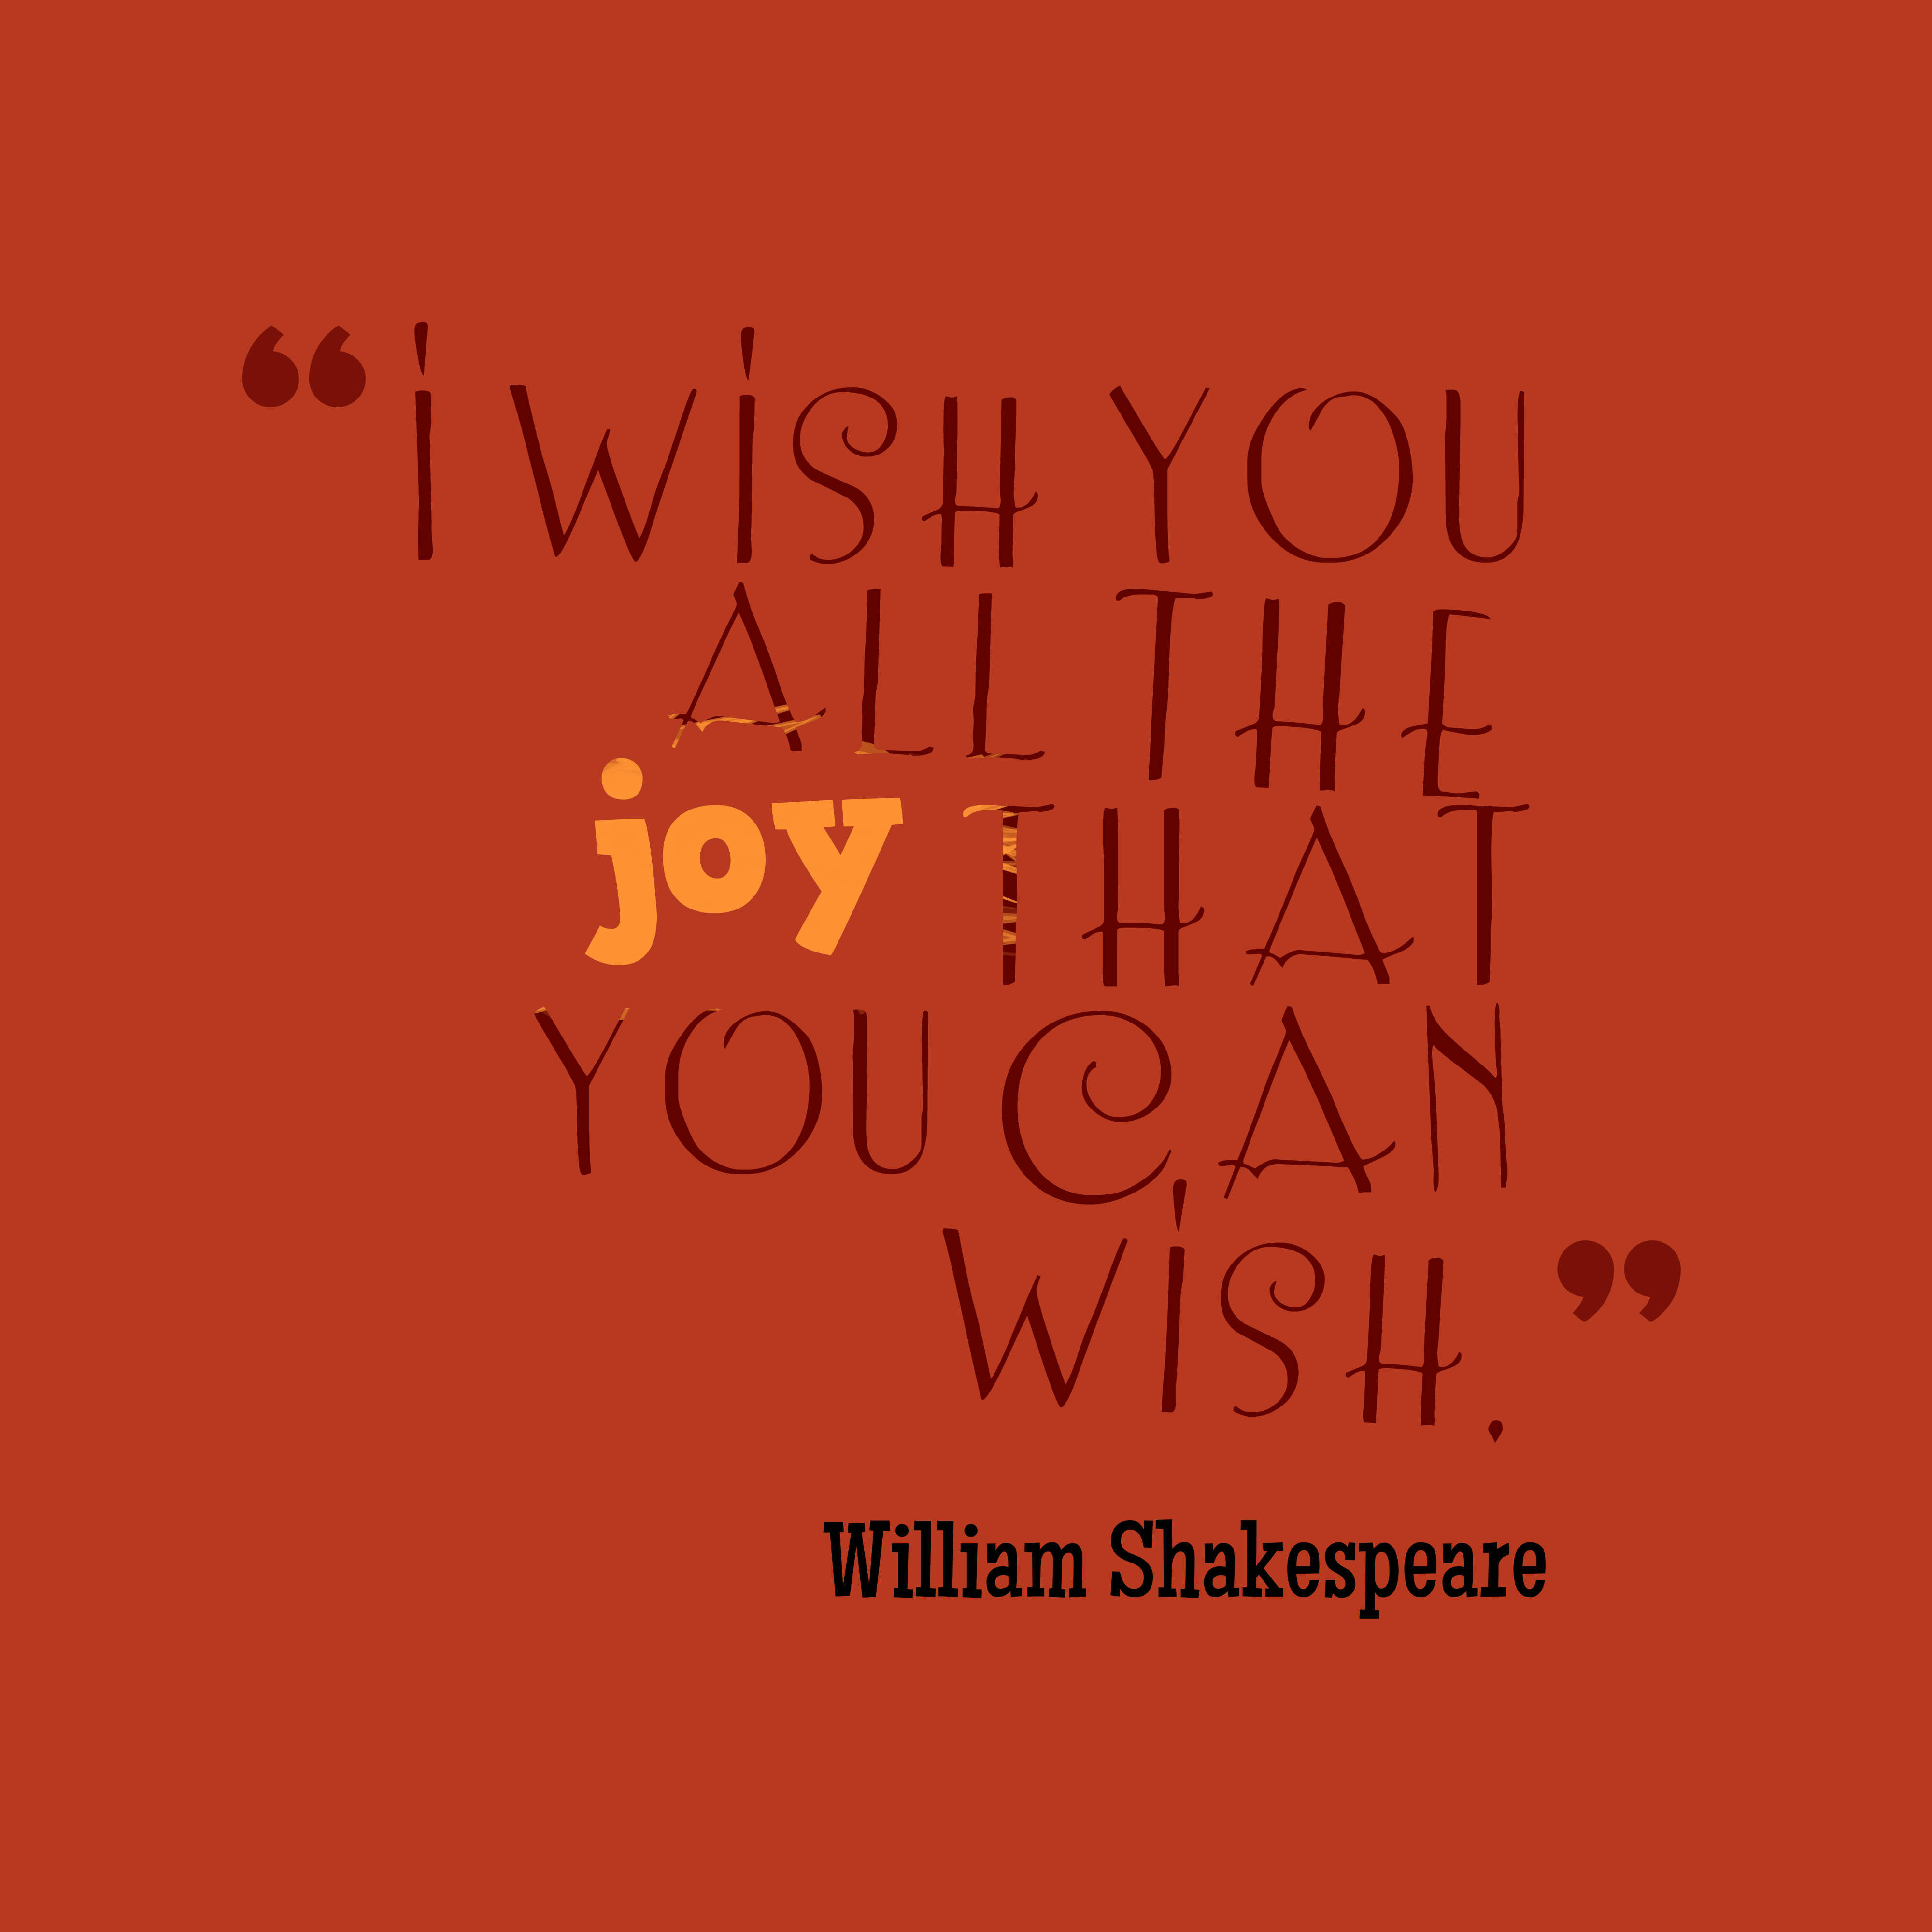 William Shakespeare Quote About Joy